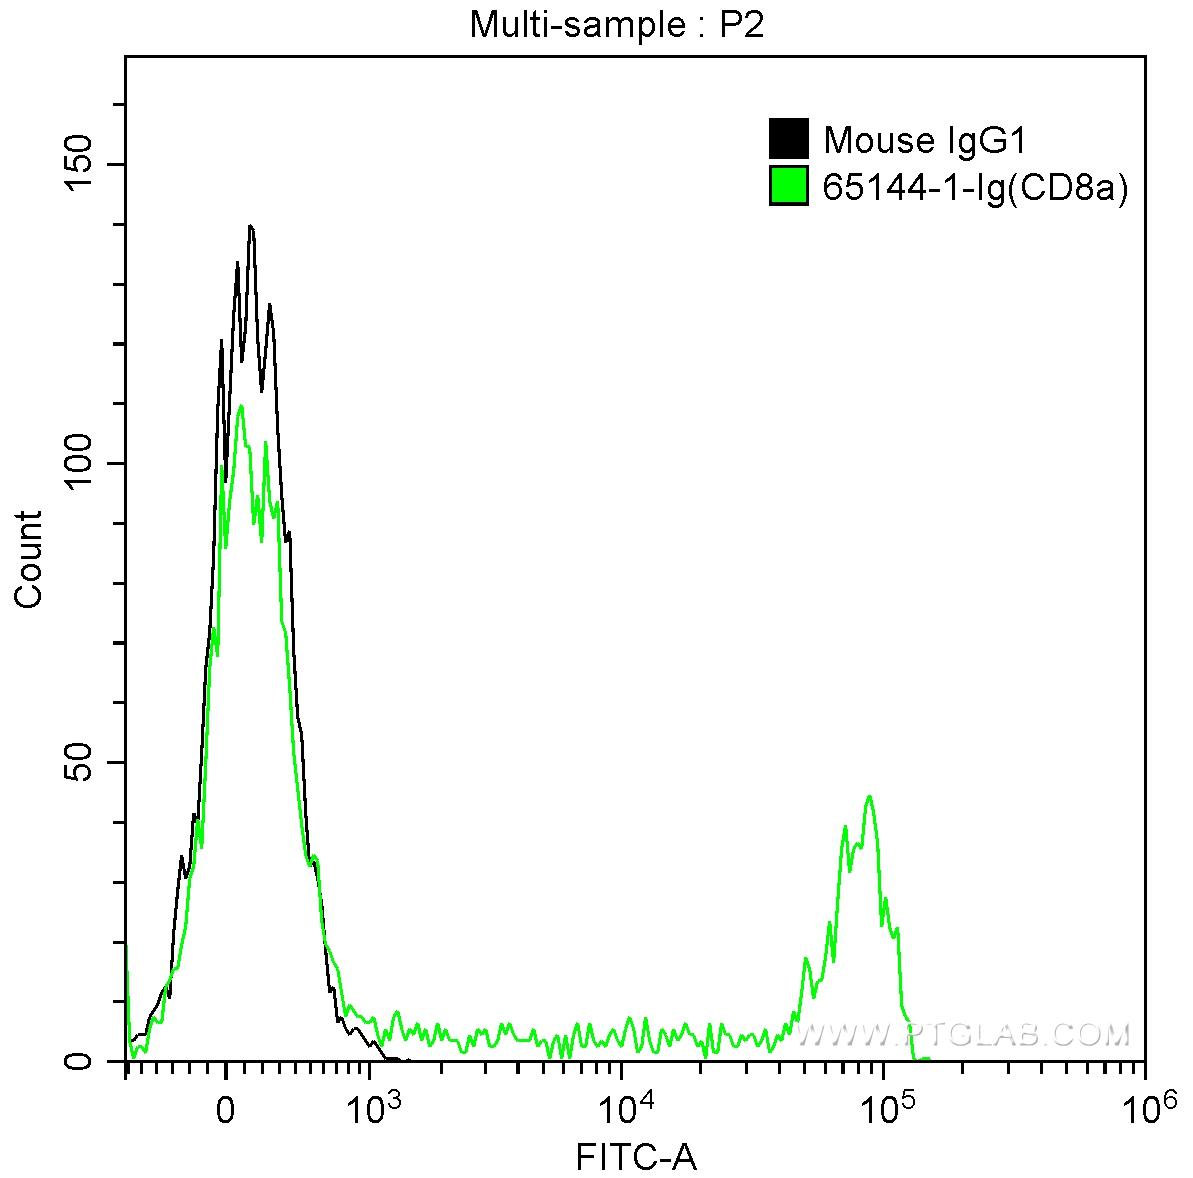 1X10^6 human peripheral blood lymphocytes were surface stained with 0.5 ug Anti-Human CD8a (65144-1-Ig, Clone:RPA-T8) and CoraLite®488-Conjugated AffiniPure Goat Anti-Mouse IgG(H+L) at dilution 1:1000 (green), or stained with 0.5 ug isotype control antibody and CoraLite®488-Conjugated AffiniPure Goat Anti-Mouse IgG(H+L) at dilution 1:1000 (black). Samples were not fixed.